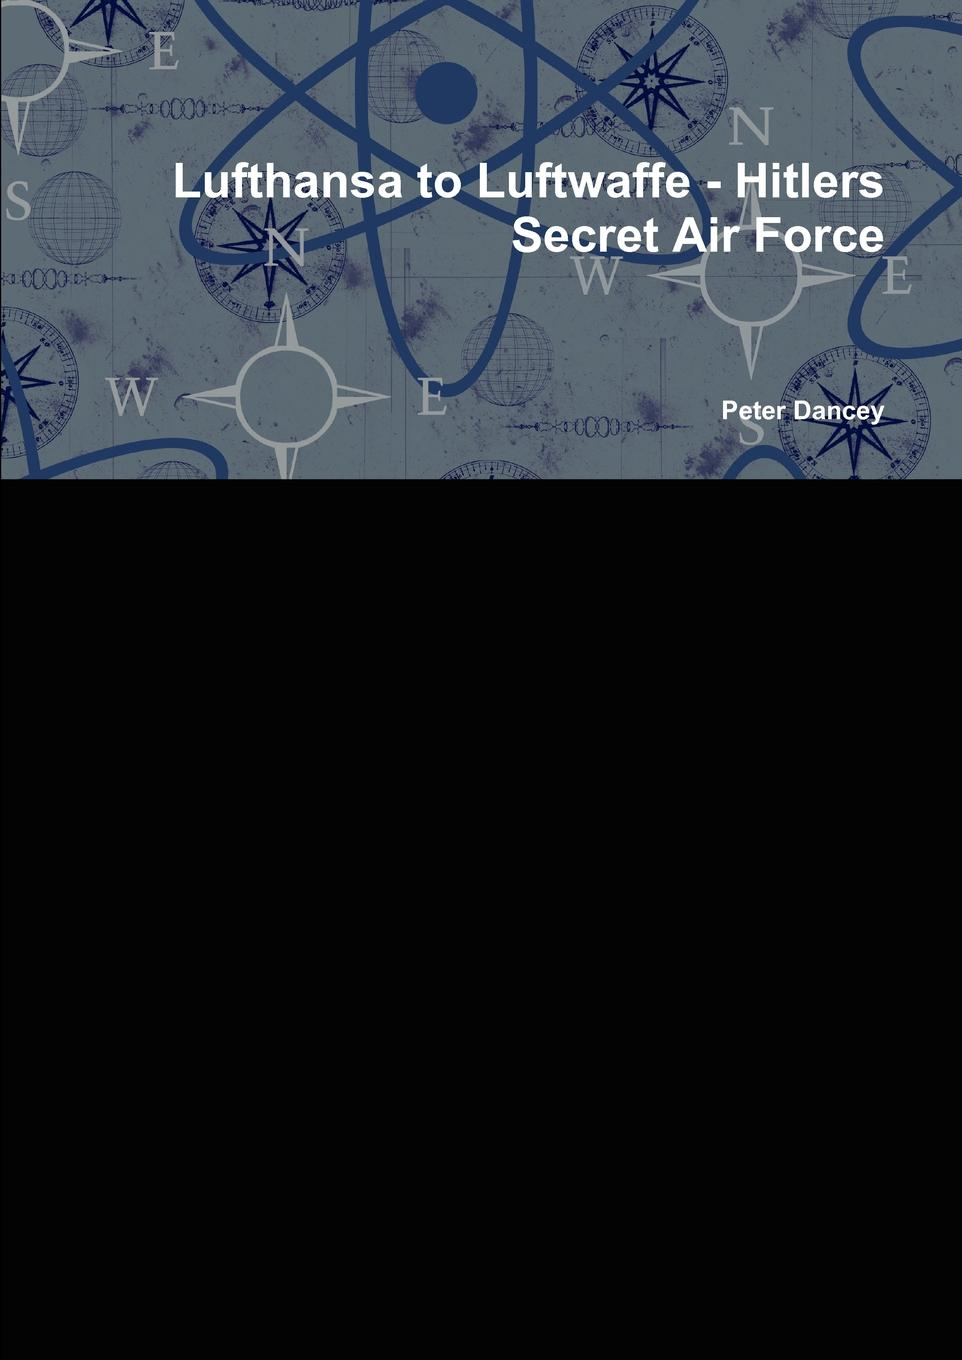 Peter Dancey Lufthansa to Luftwaffe - Hitlers Secret Air Force hitlers generals authoritative portraits of the men who waged hitlers war